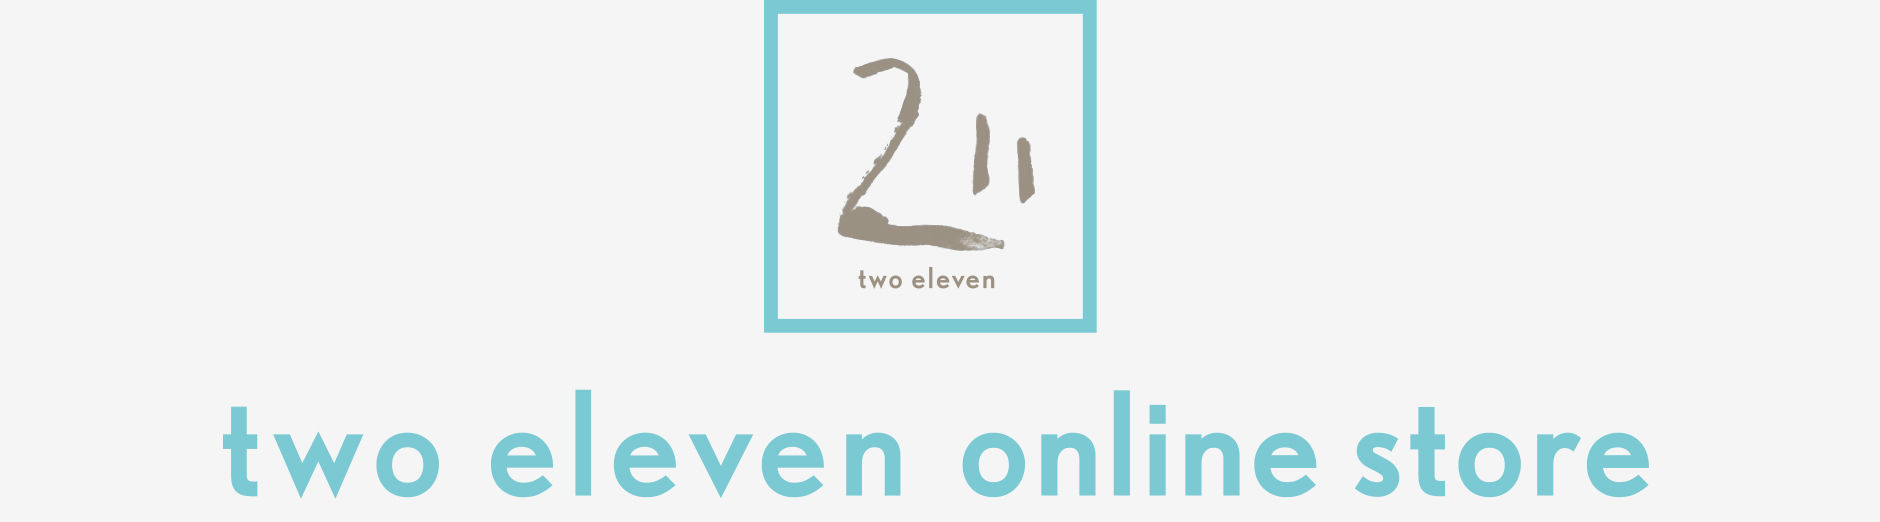 two eleven online store